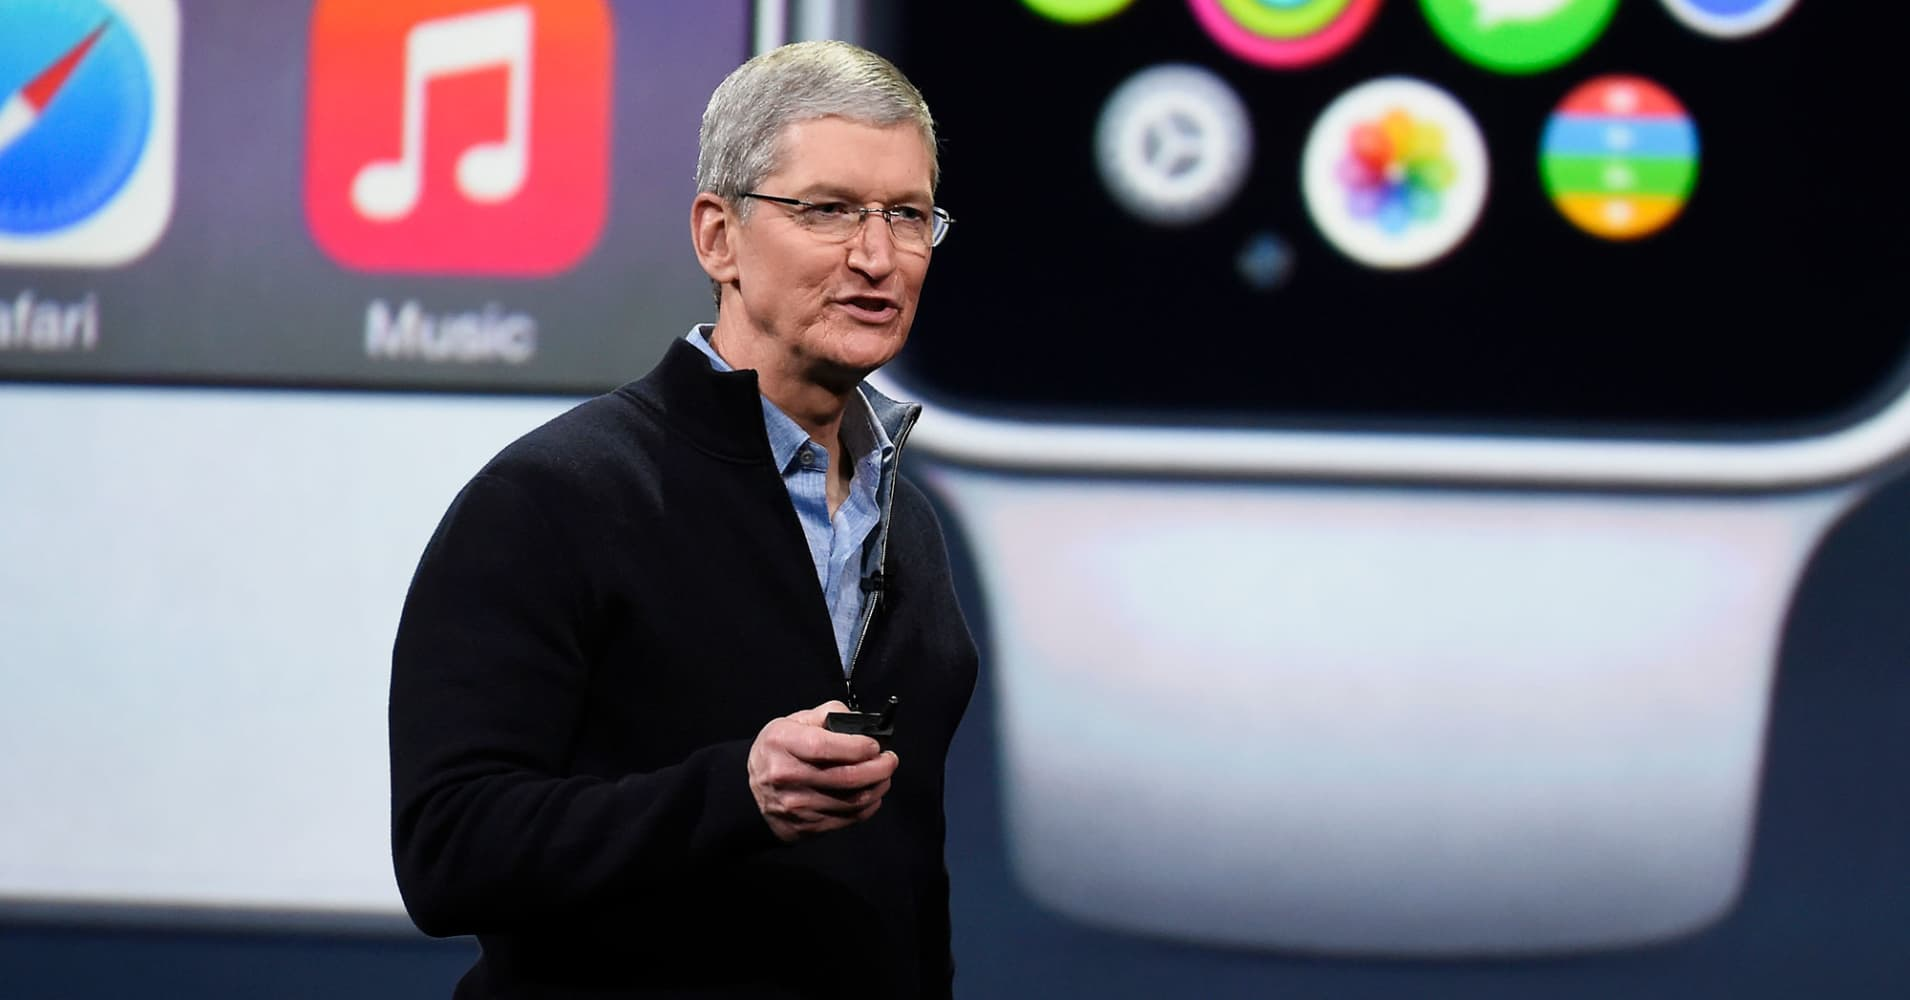 cnbc.com - Christina Farr - Apple and Aetna met last week to talk about the Apple Watch-here's what they discussed